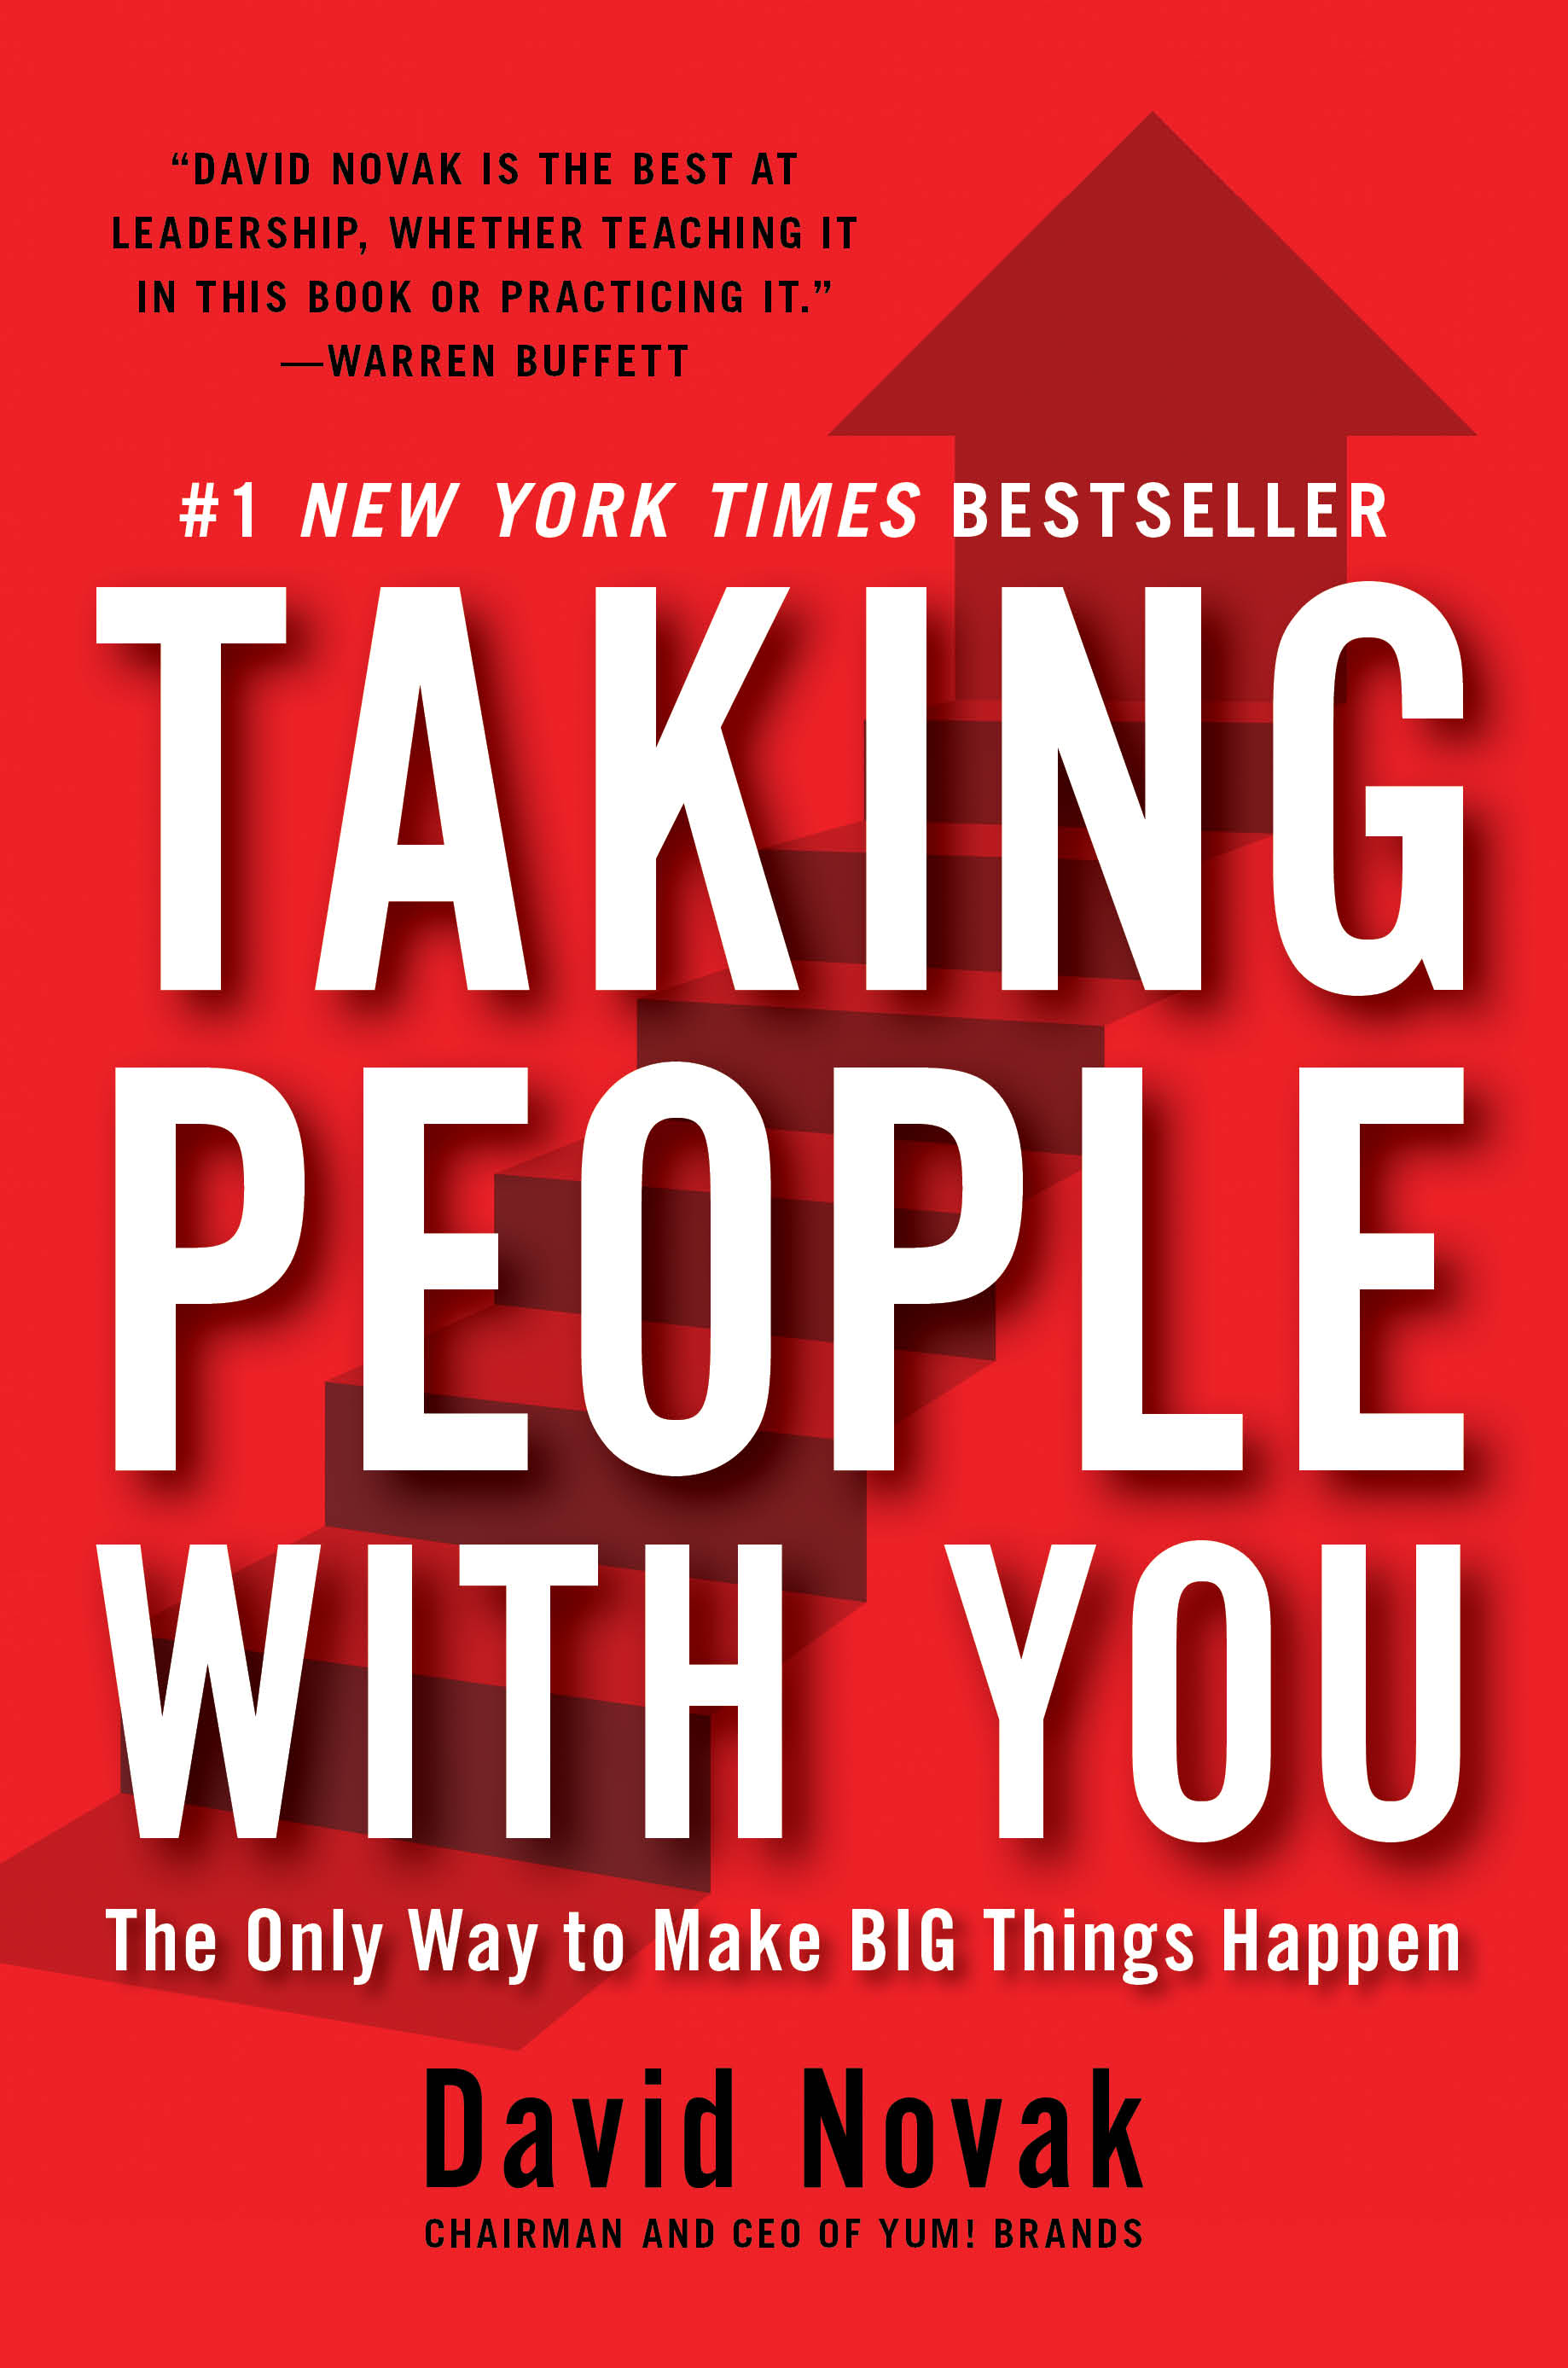 Taking People With You – The Only Way to Make Big Things Happen